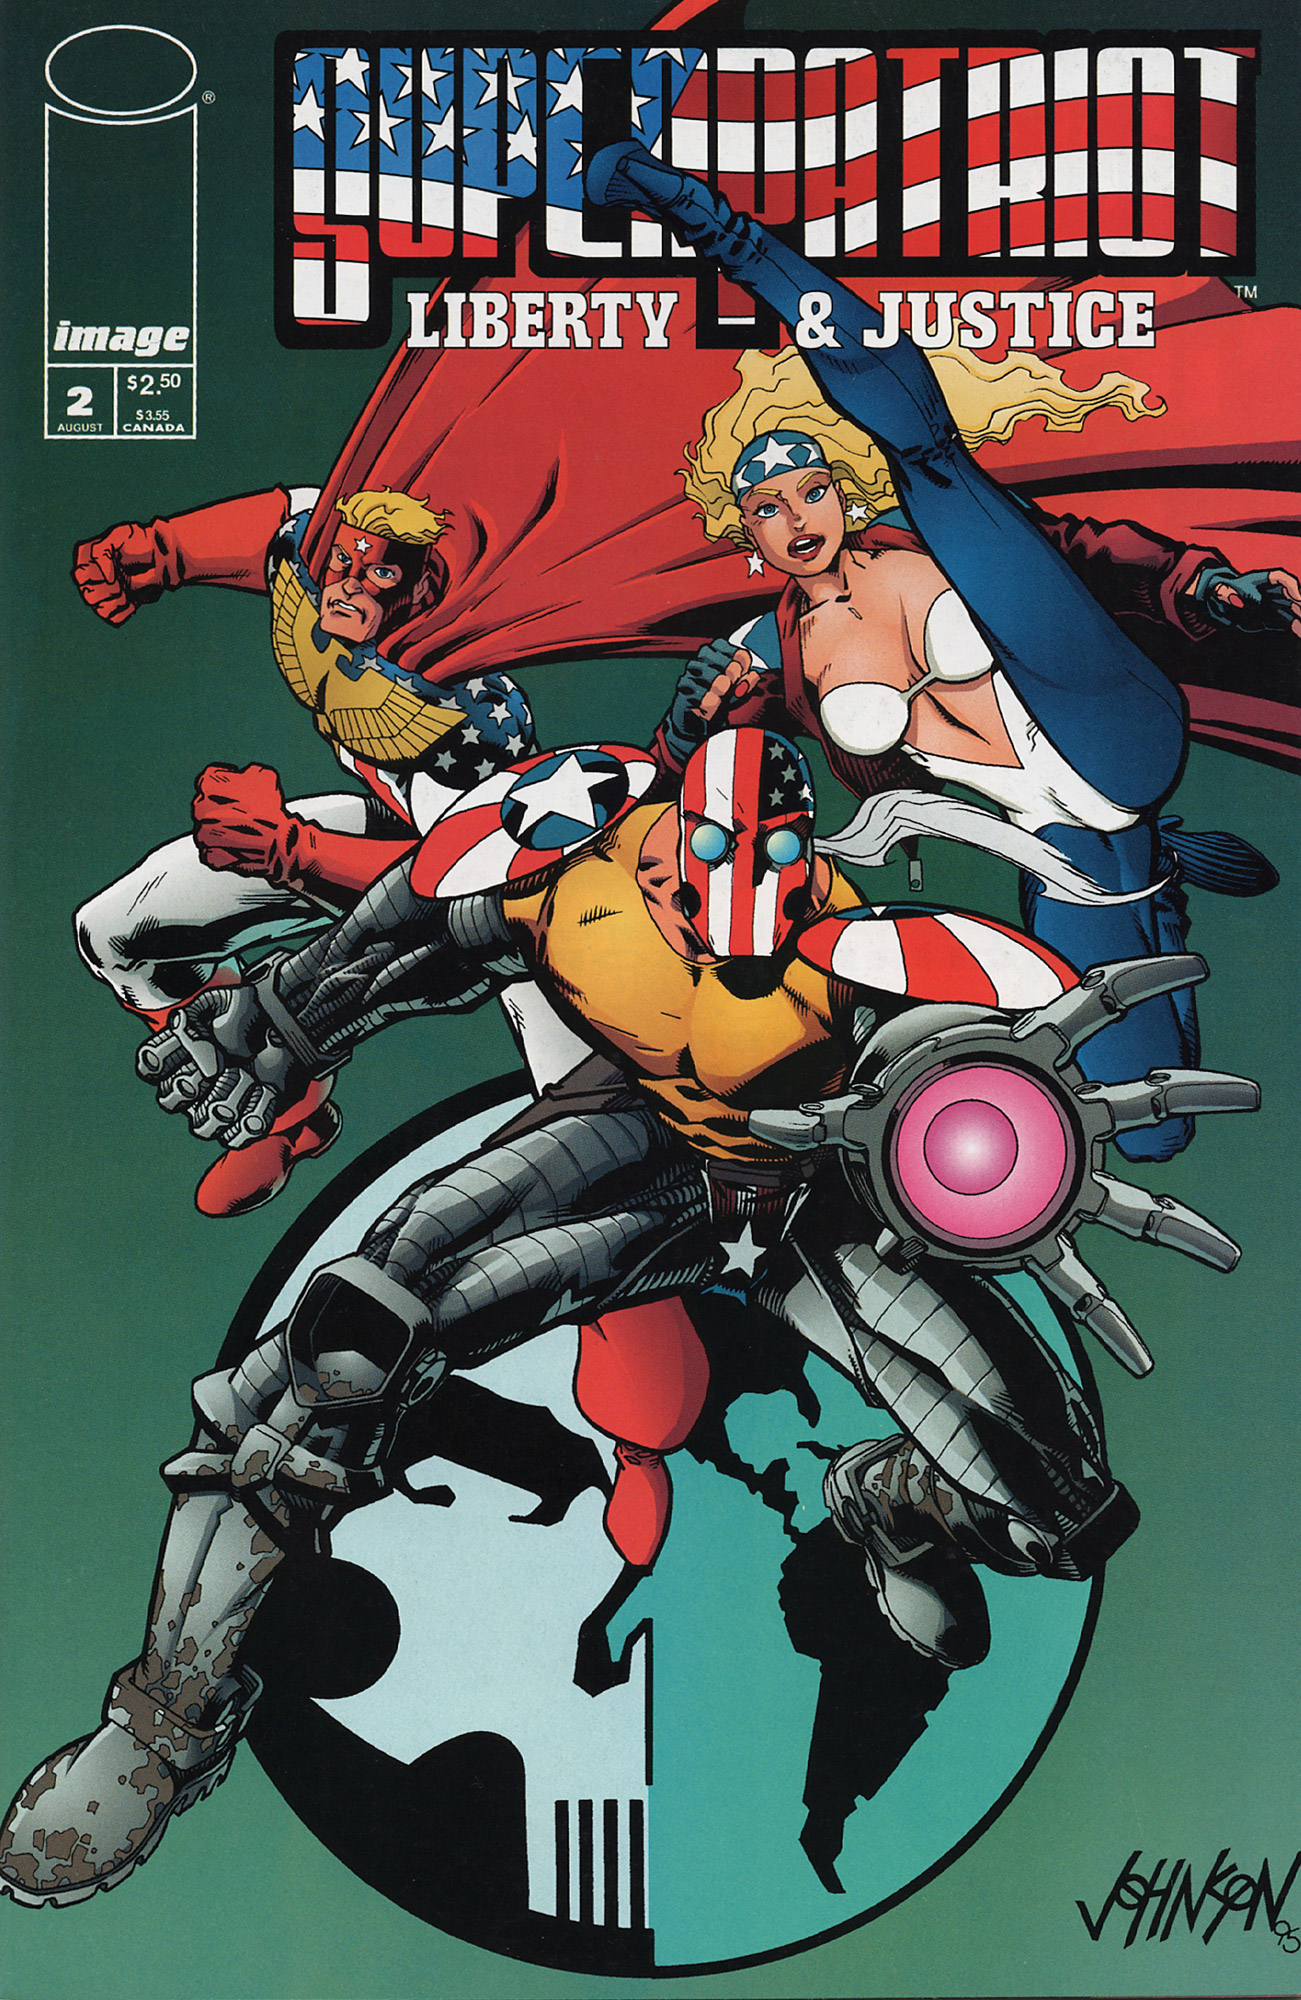 Cover SuperPatriot Vol.2 #2